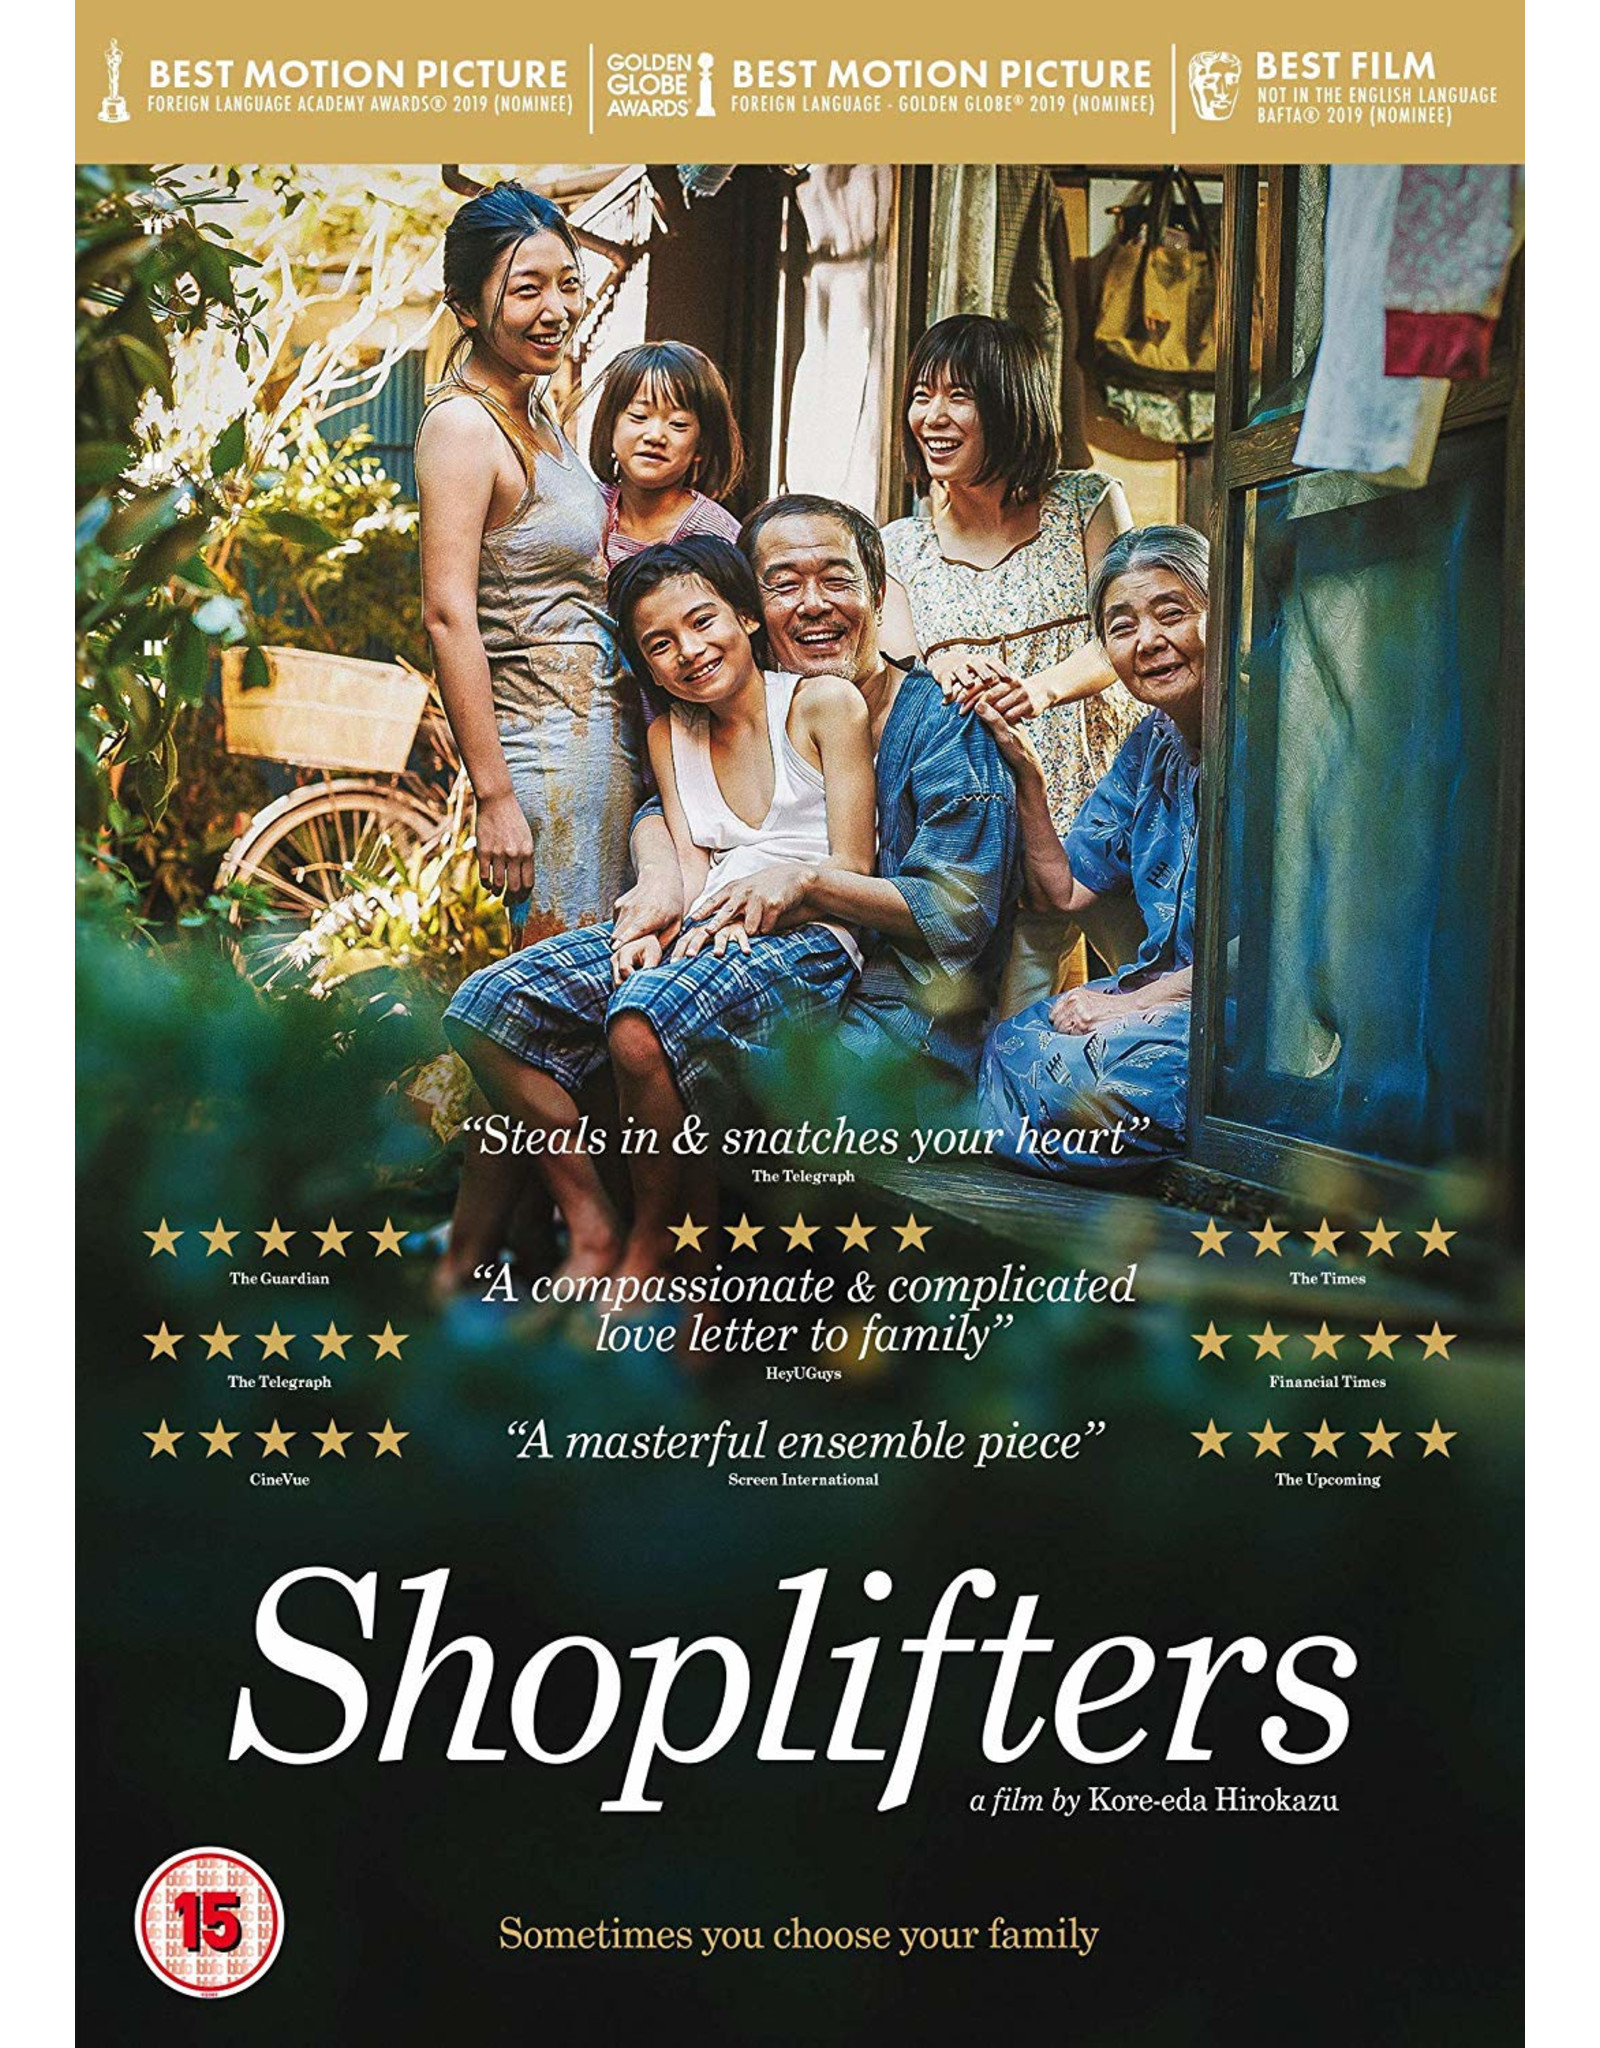 Shoplifters (DVD) - (Original version, English subtitles)